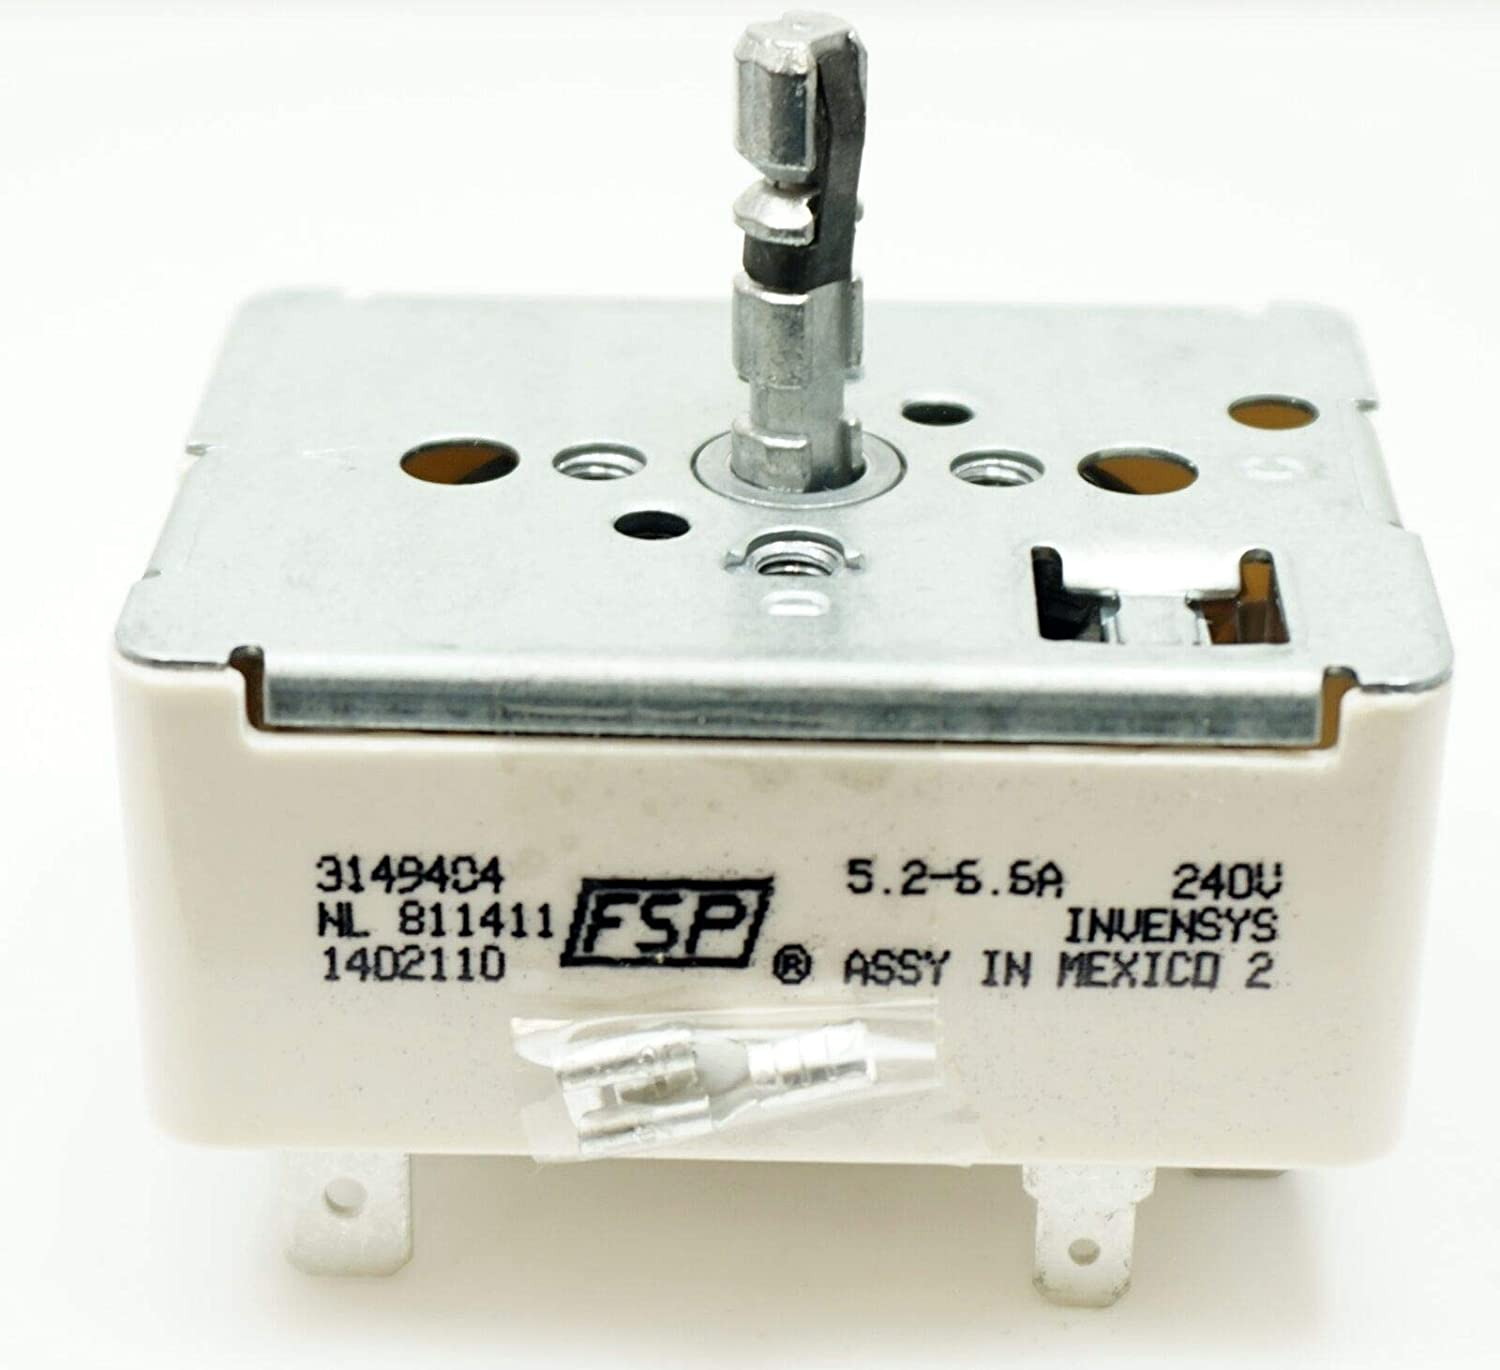 (RB) ES9404 Surface Element Infinite Switch For Whirlpool 3149404, 3148951, PS336993